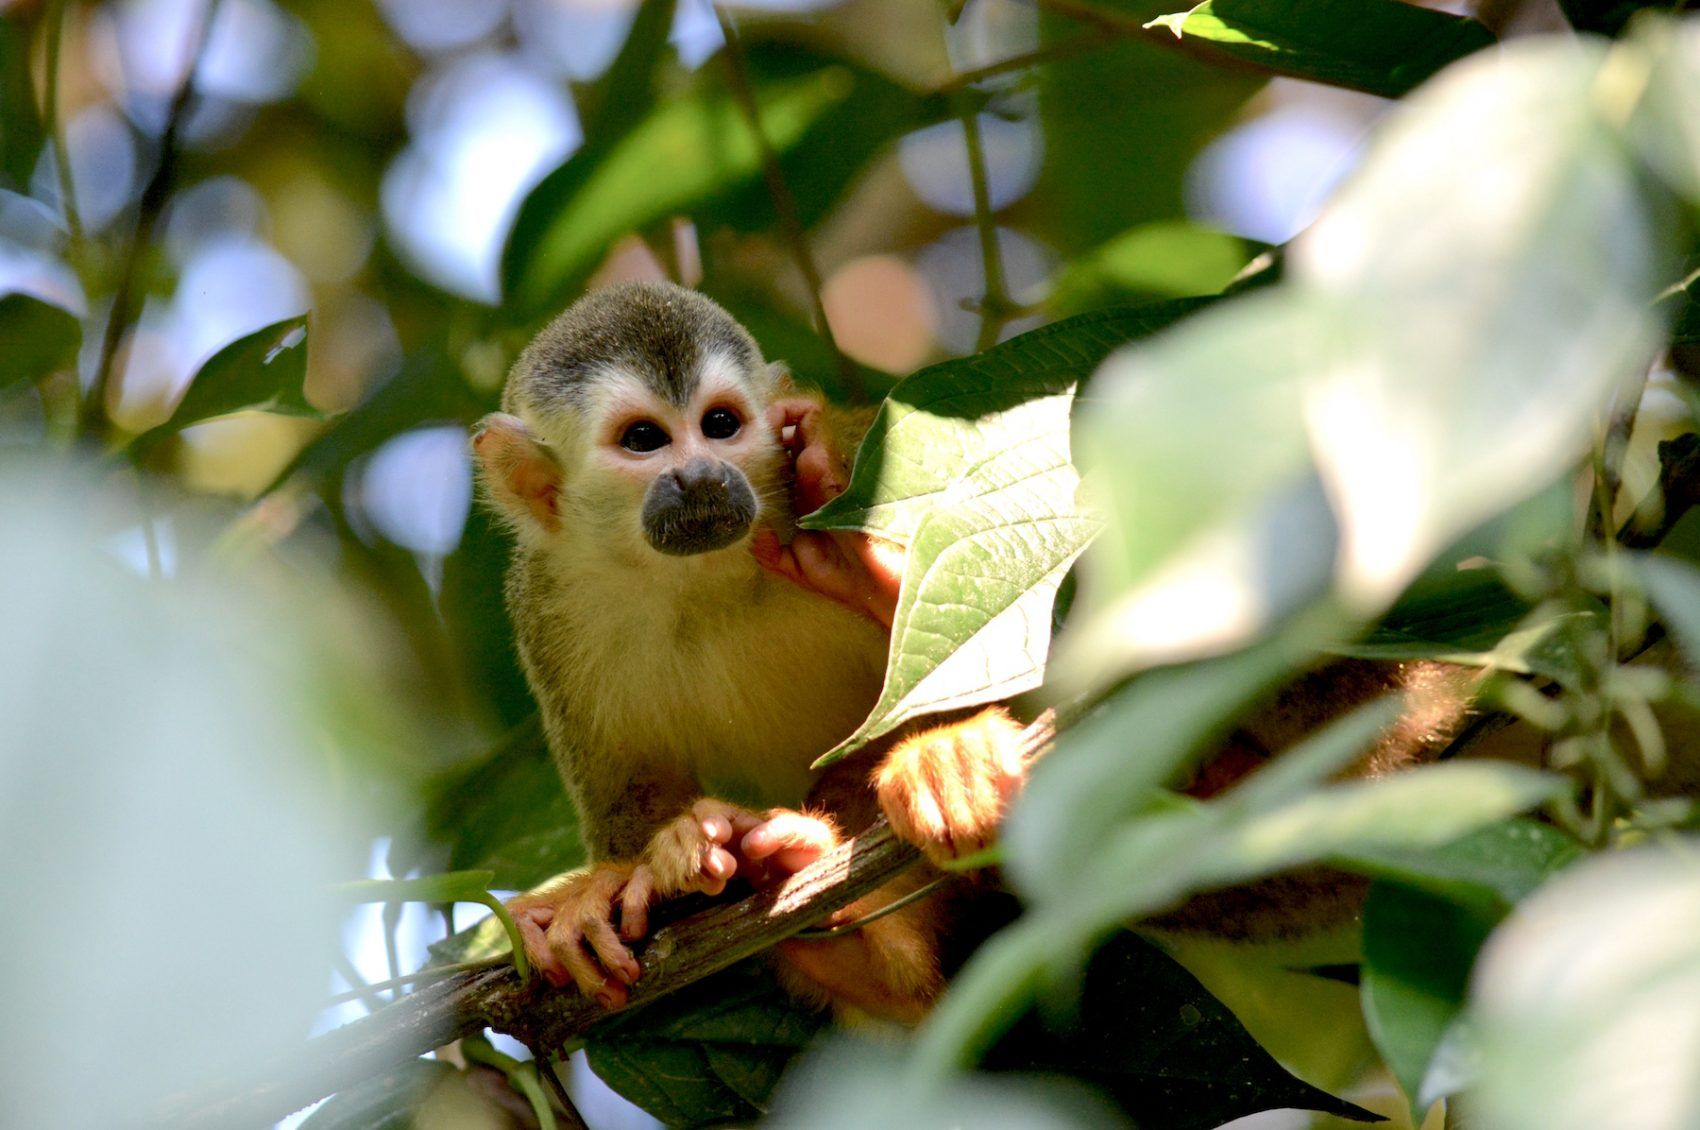 facts about squirrel monkeys in the amazon rainforest